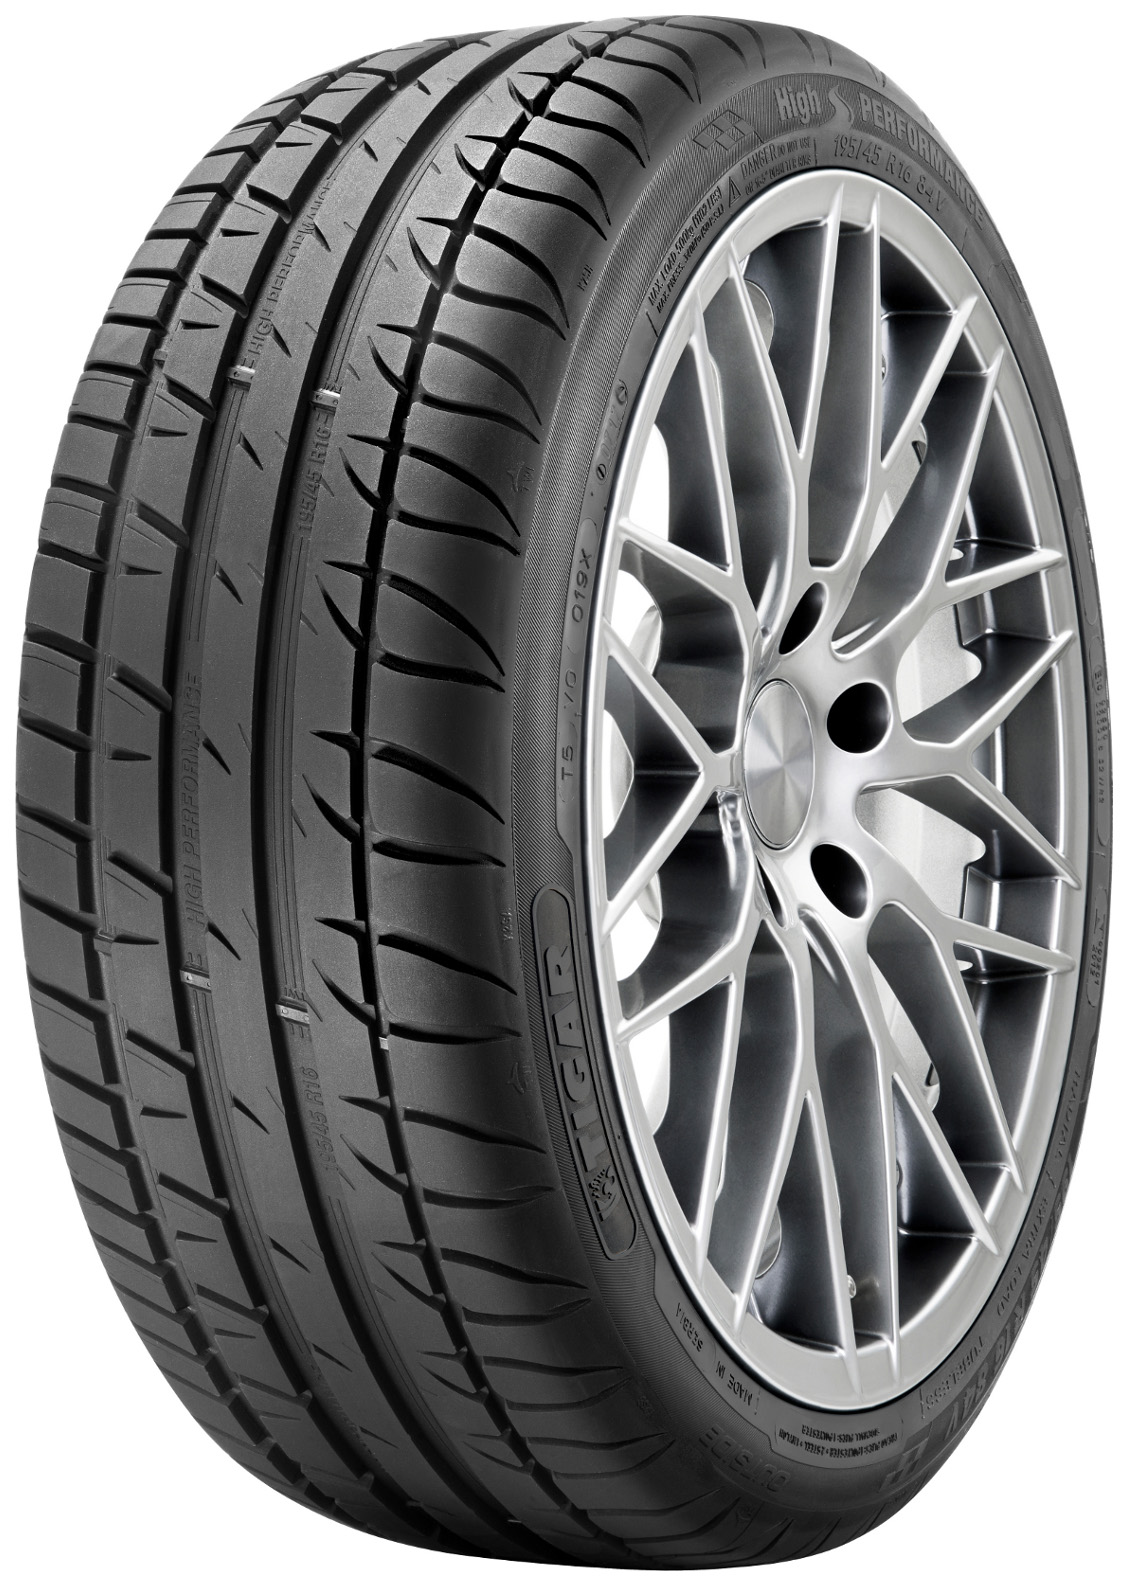 205/60 R16 96V XL HIGH PERFORMANCE